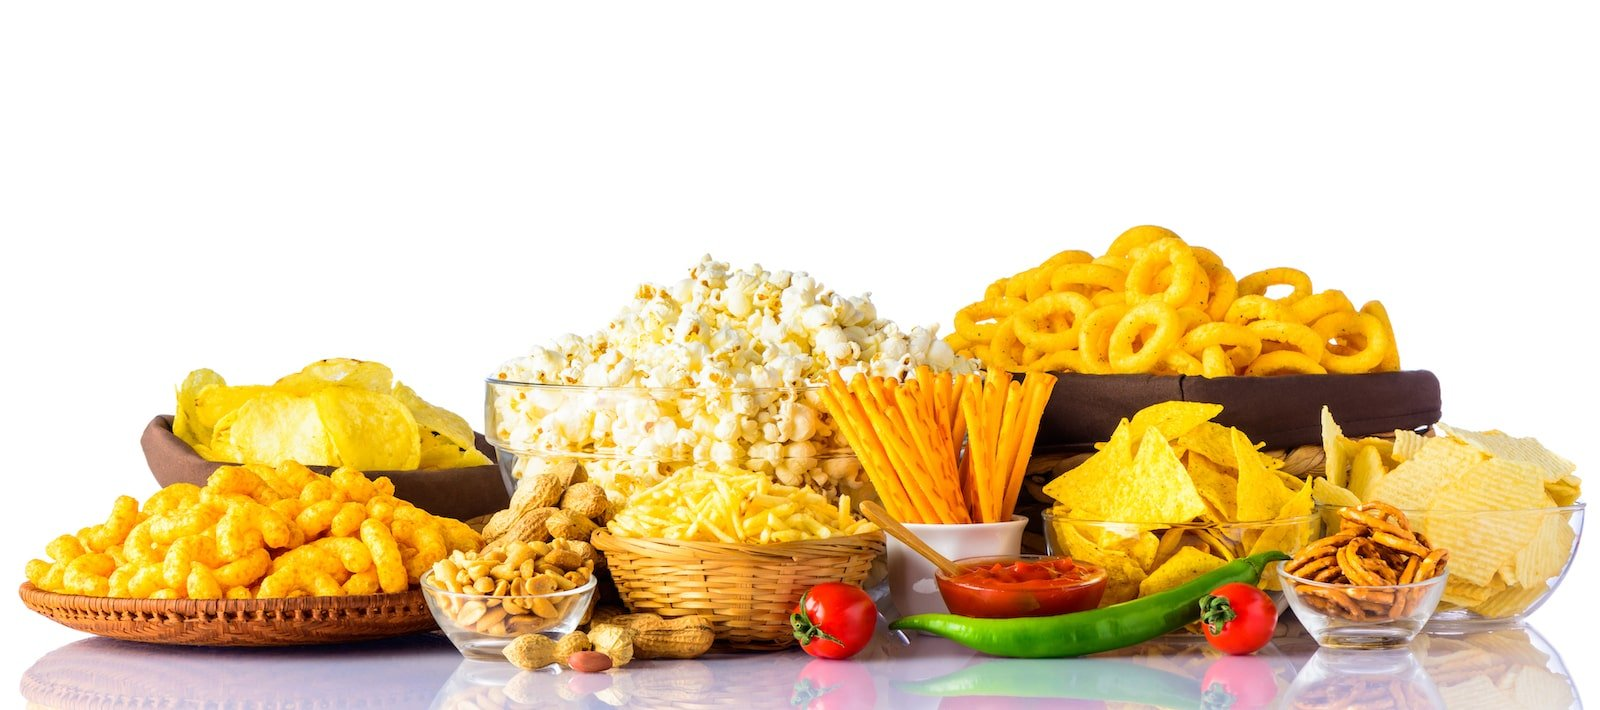 The Foods & Beverages That Cause Tooth Erosion